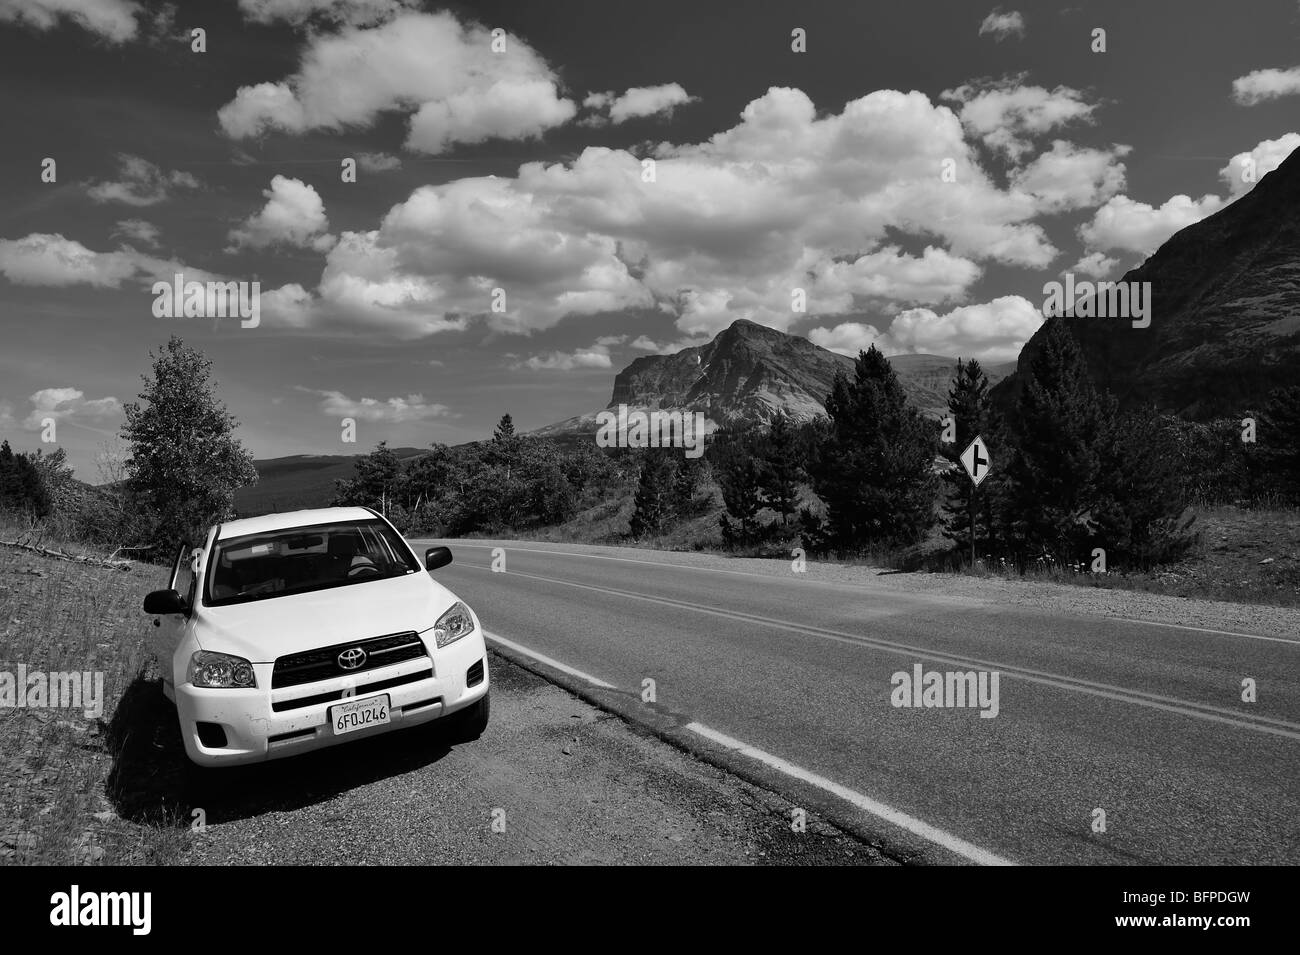 White car parked on the road next to the Sherburne lake in Many Glaciers area of the Glacier national park, Montana - Stock Image